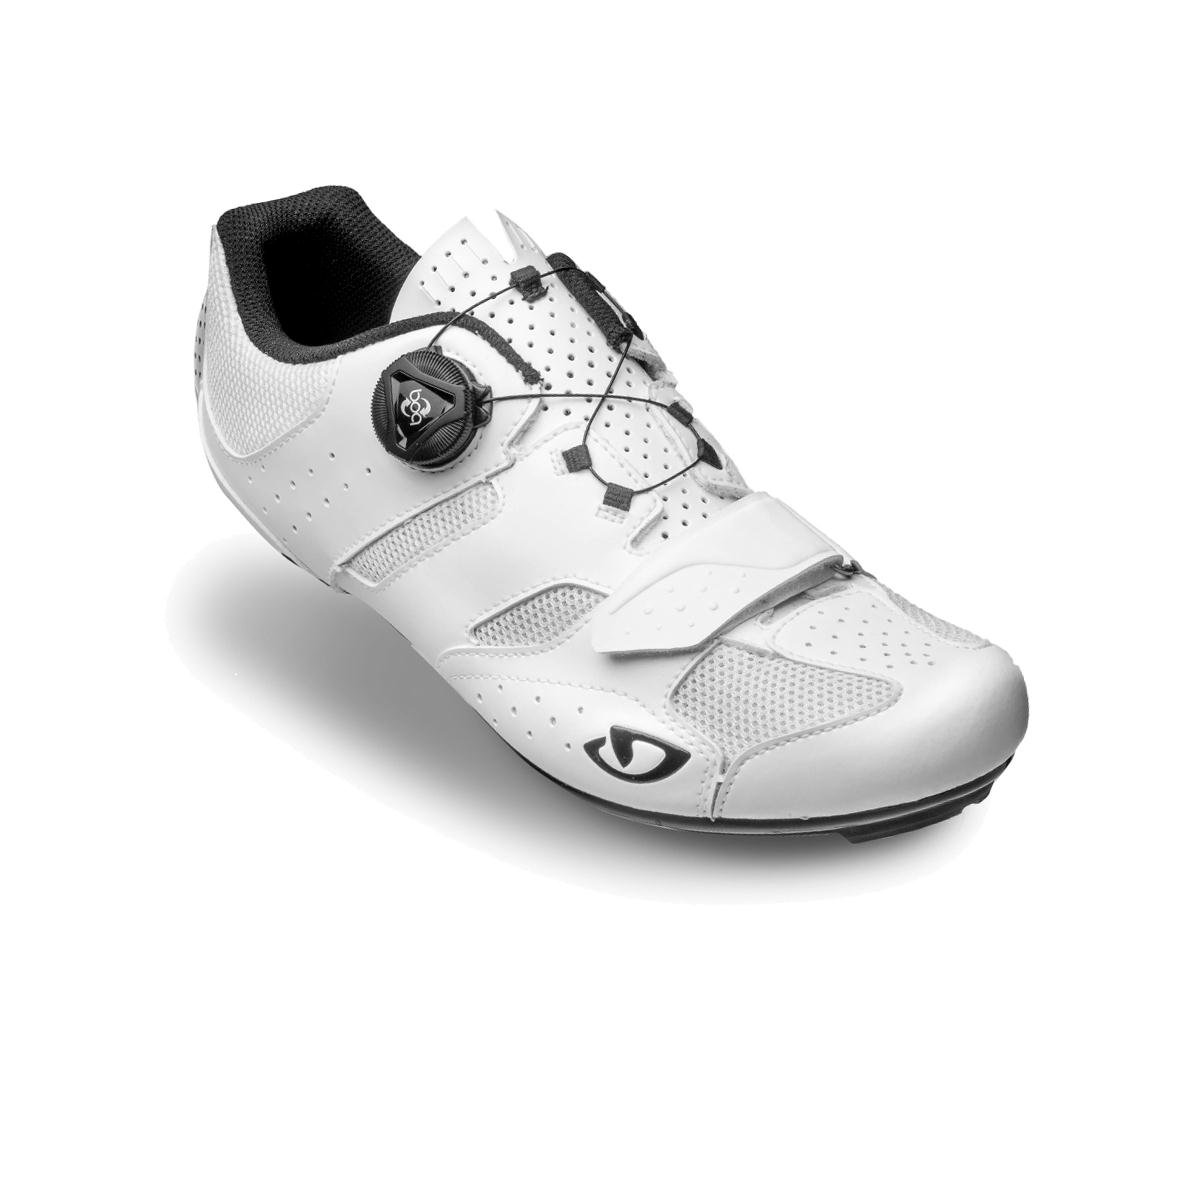 Giro Savix Cycling Shoe - Men's 7077171